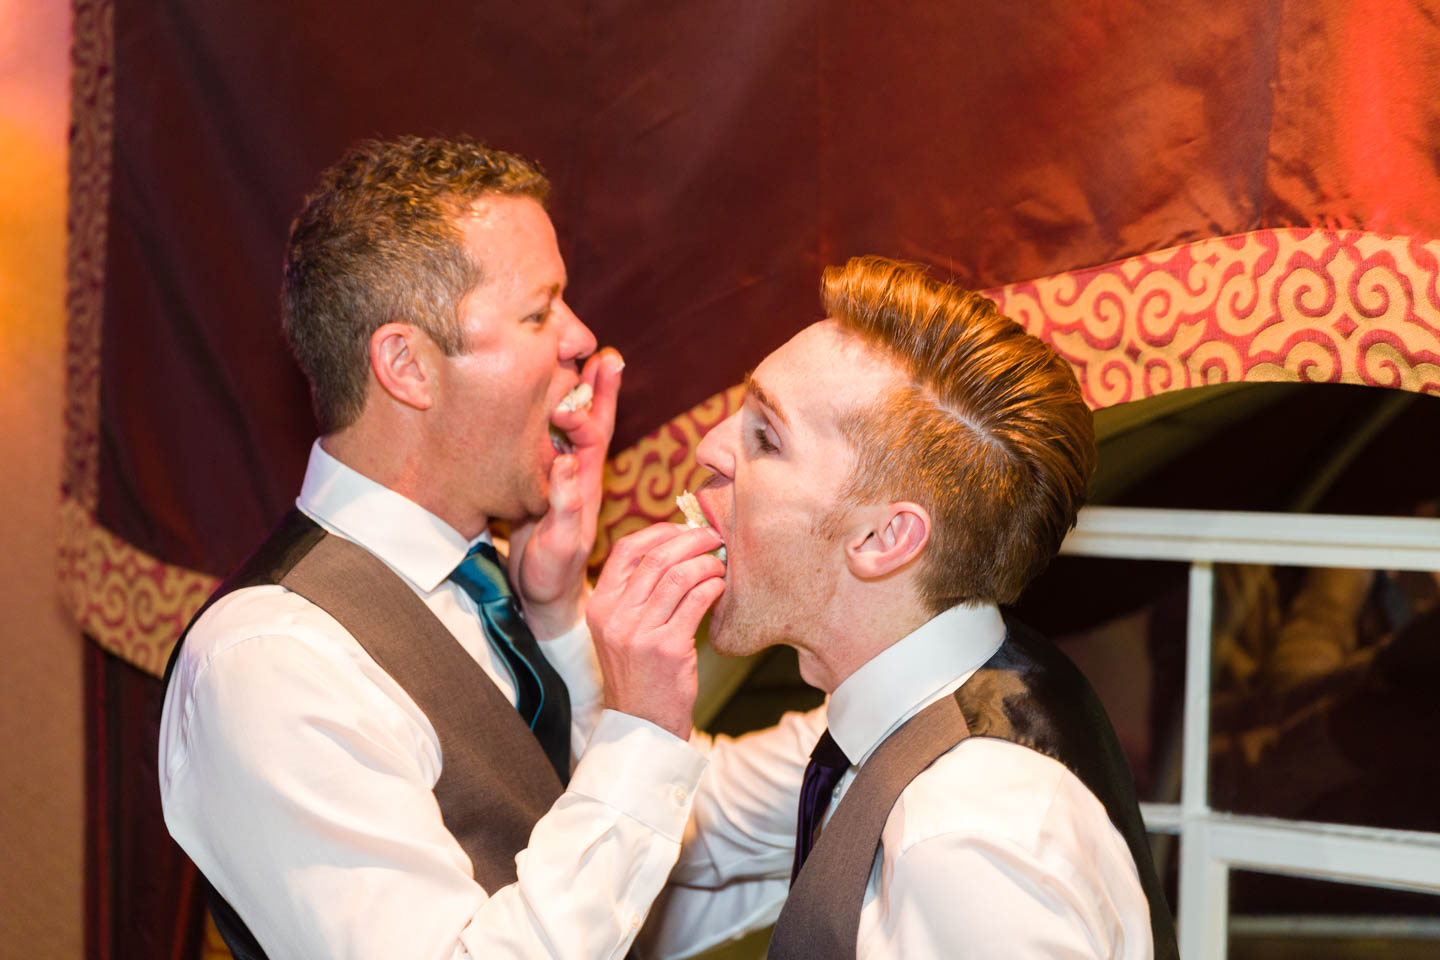 Grooms share wedding cake